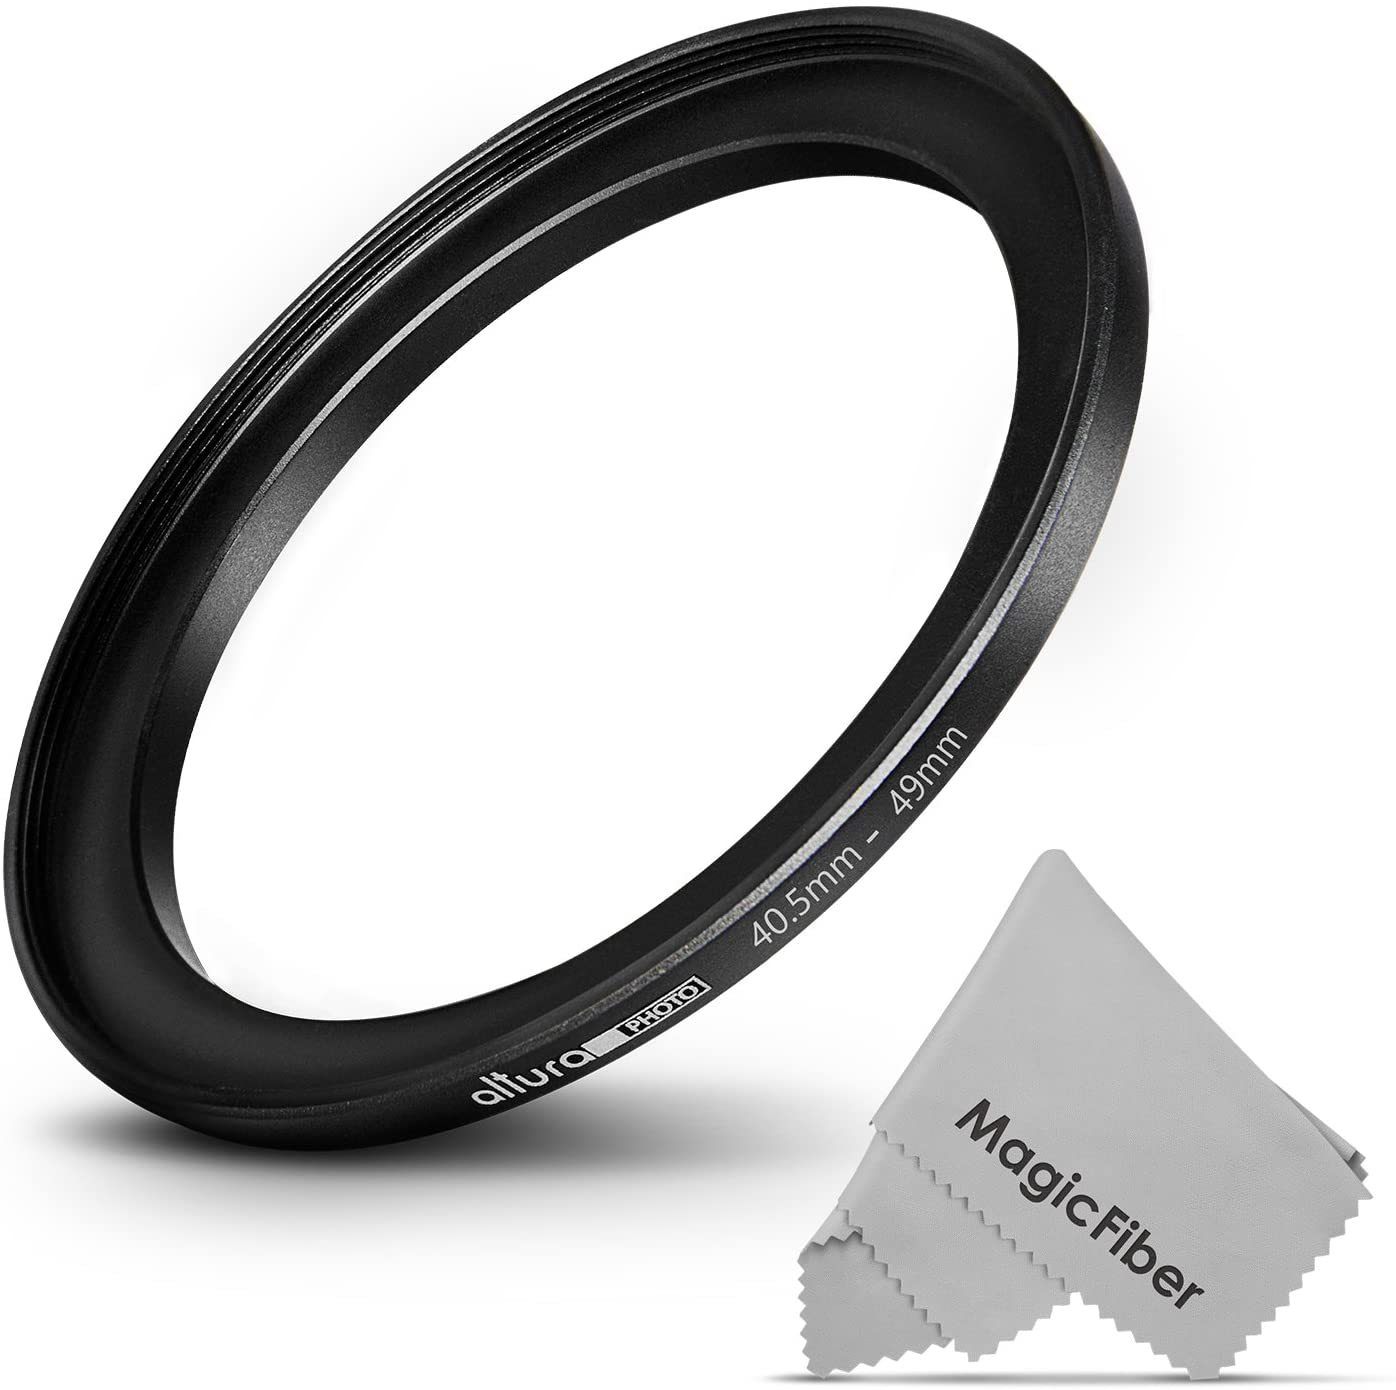 GOJA Altura Photo 40.5-49MM Step-Up Ring Adapter (40.5MM Lens to 49MM Filter or Accessory) + Premium MagicFiber Cleaning Cloth